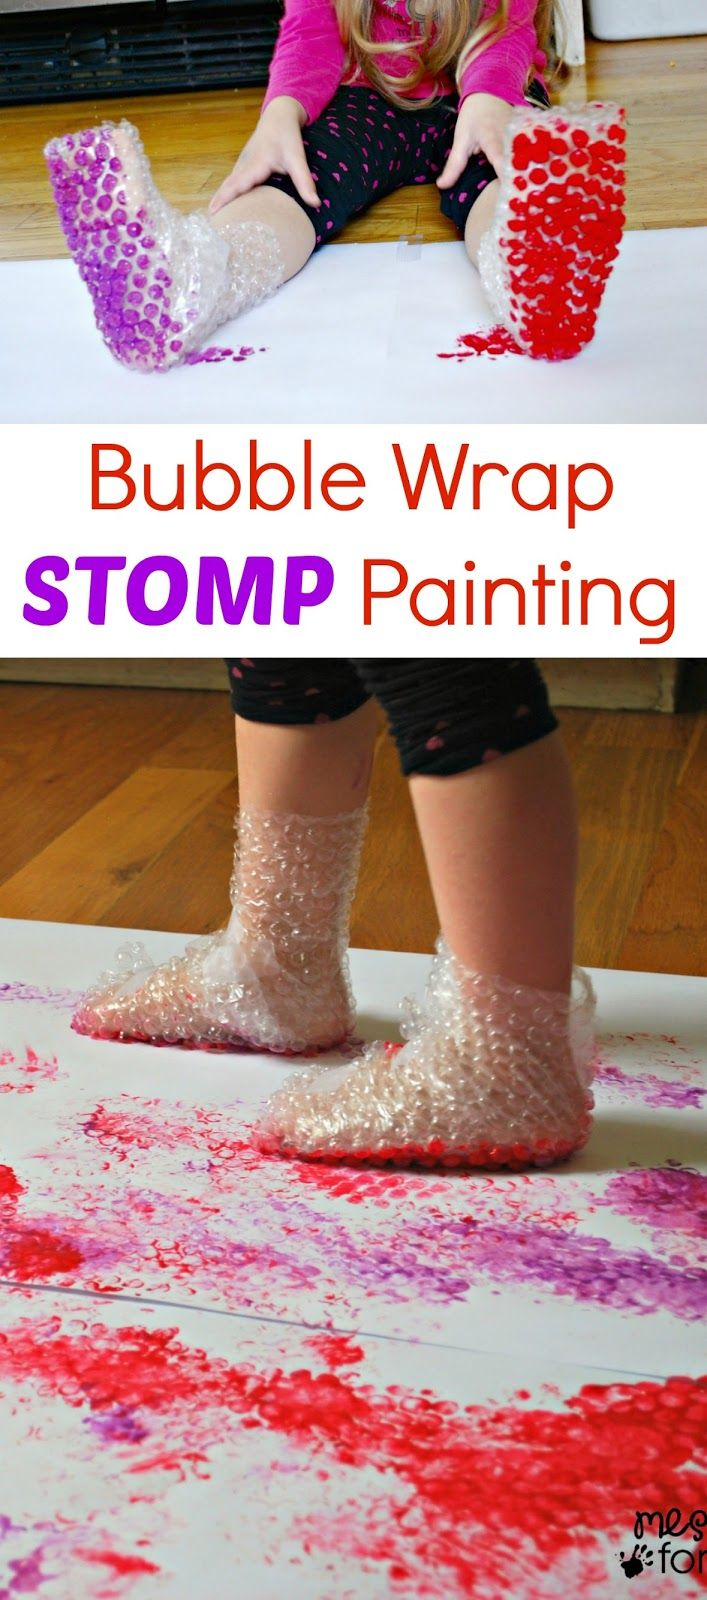 Mess For Less: Bubble Wrap Stomp Painting